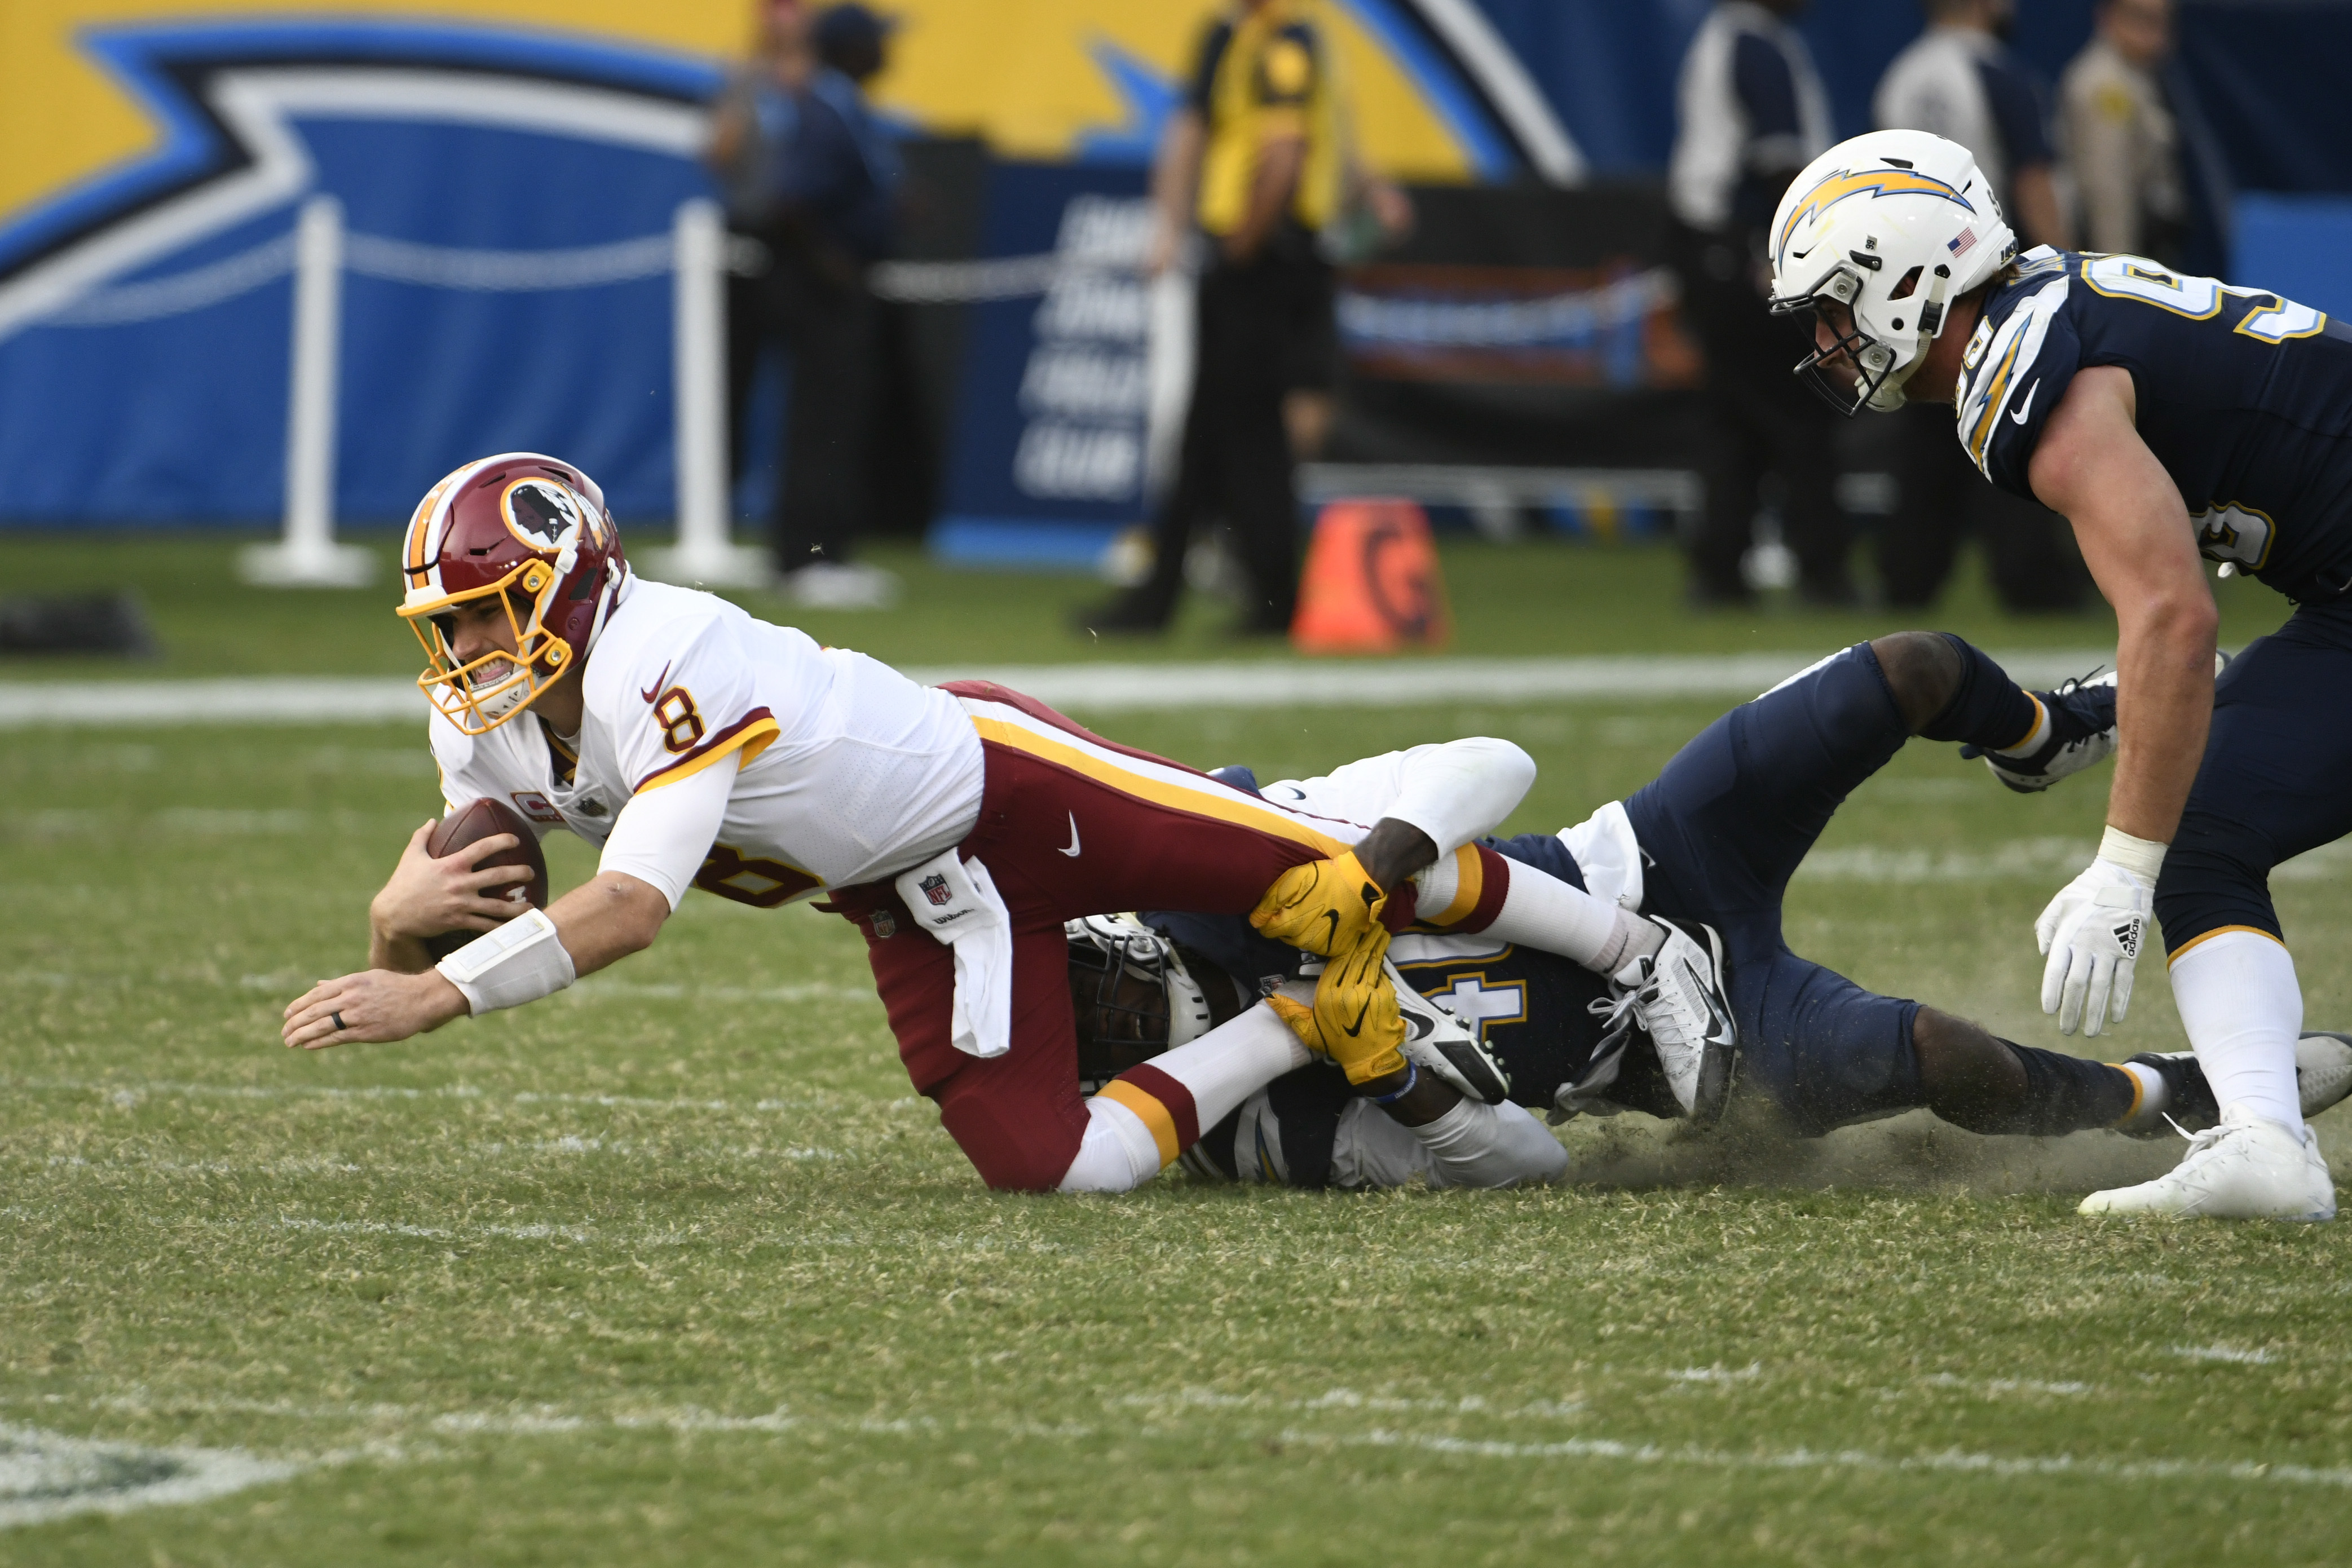 Redskins_chargers_football_41055.jpg-34000